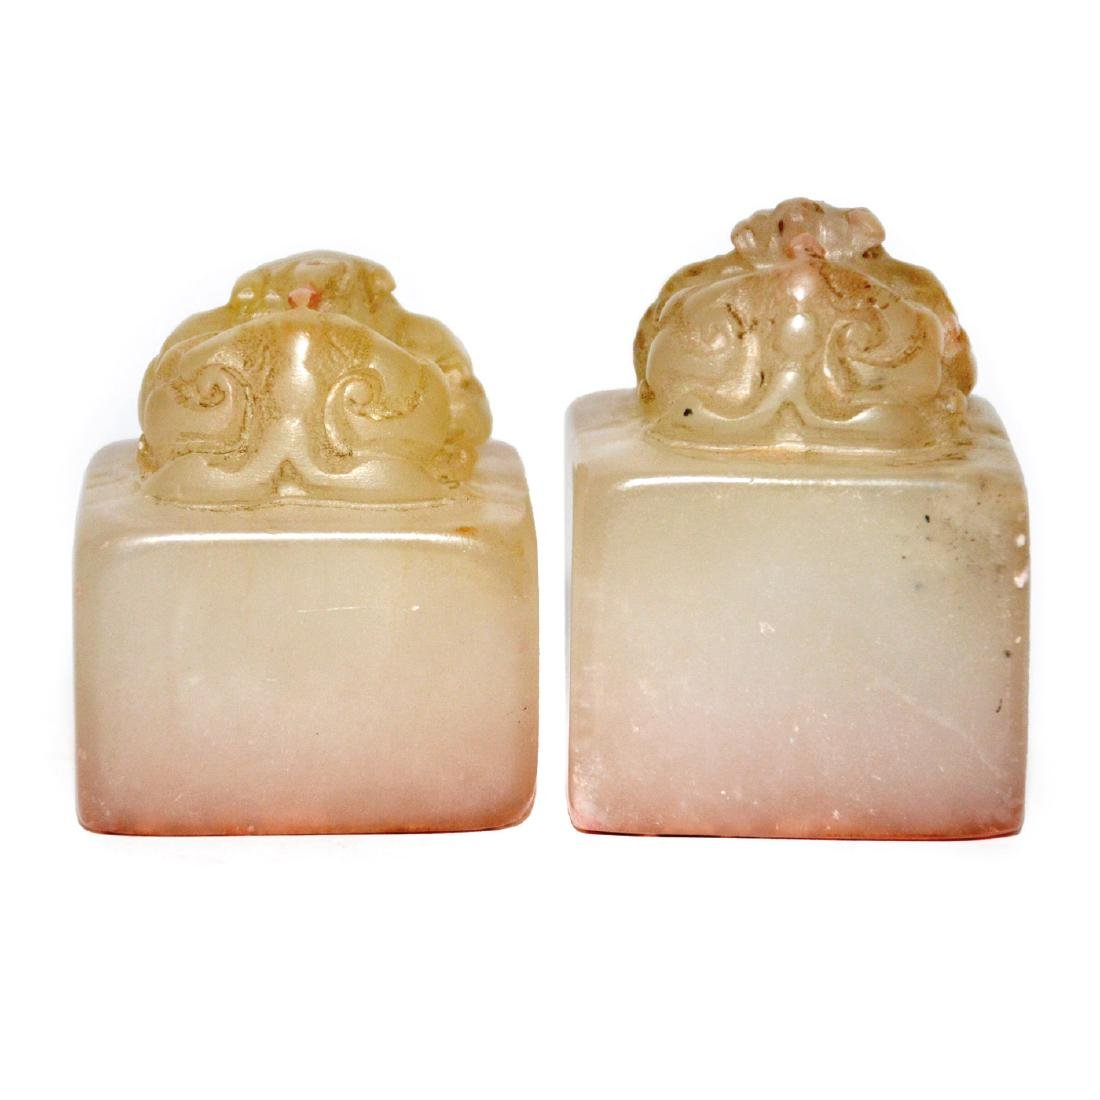 A Pair of Furong Stone Seal with Bixie Knop - 3